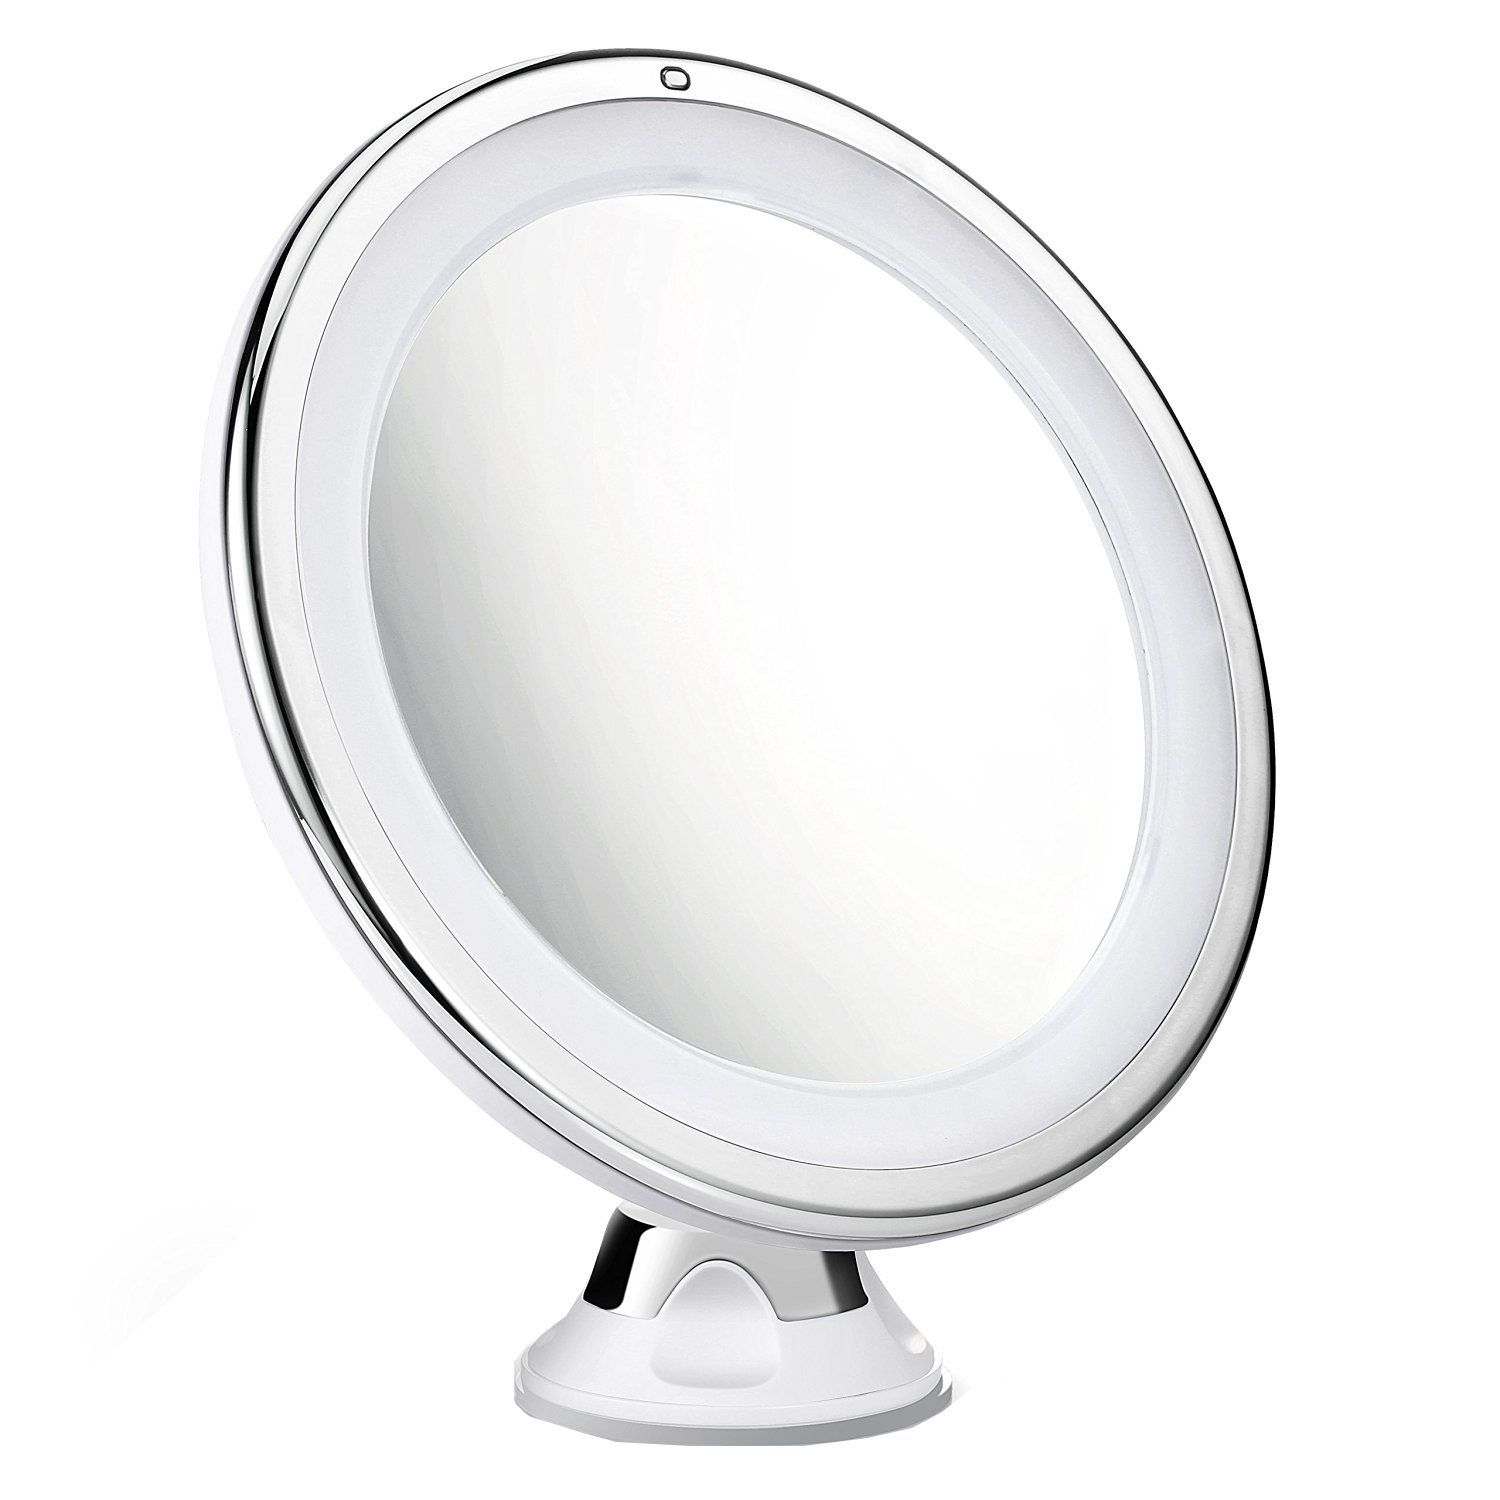 Cymas 7 215 Magnifying Lighted Makeup Mirror 15 Min Auto